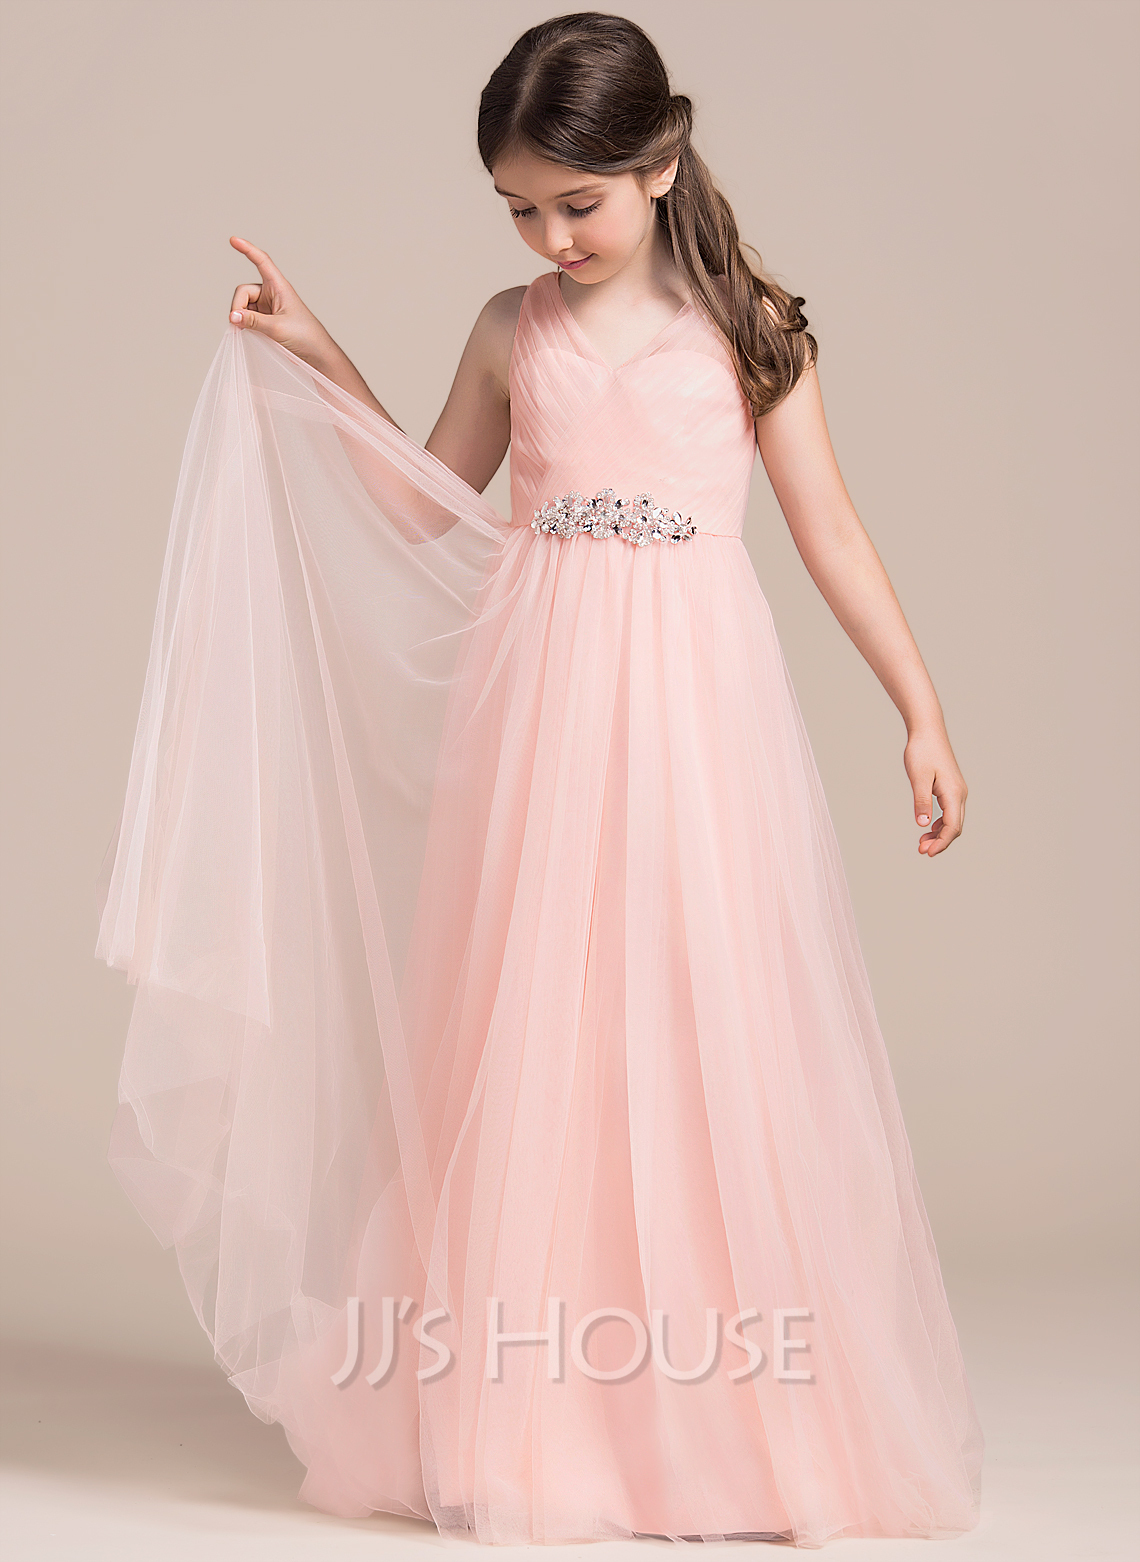 A-Line/Princess Floor-length Flower Girl Dress